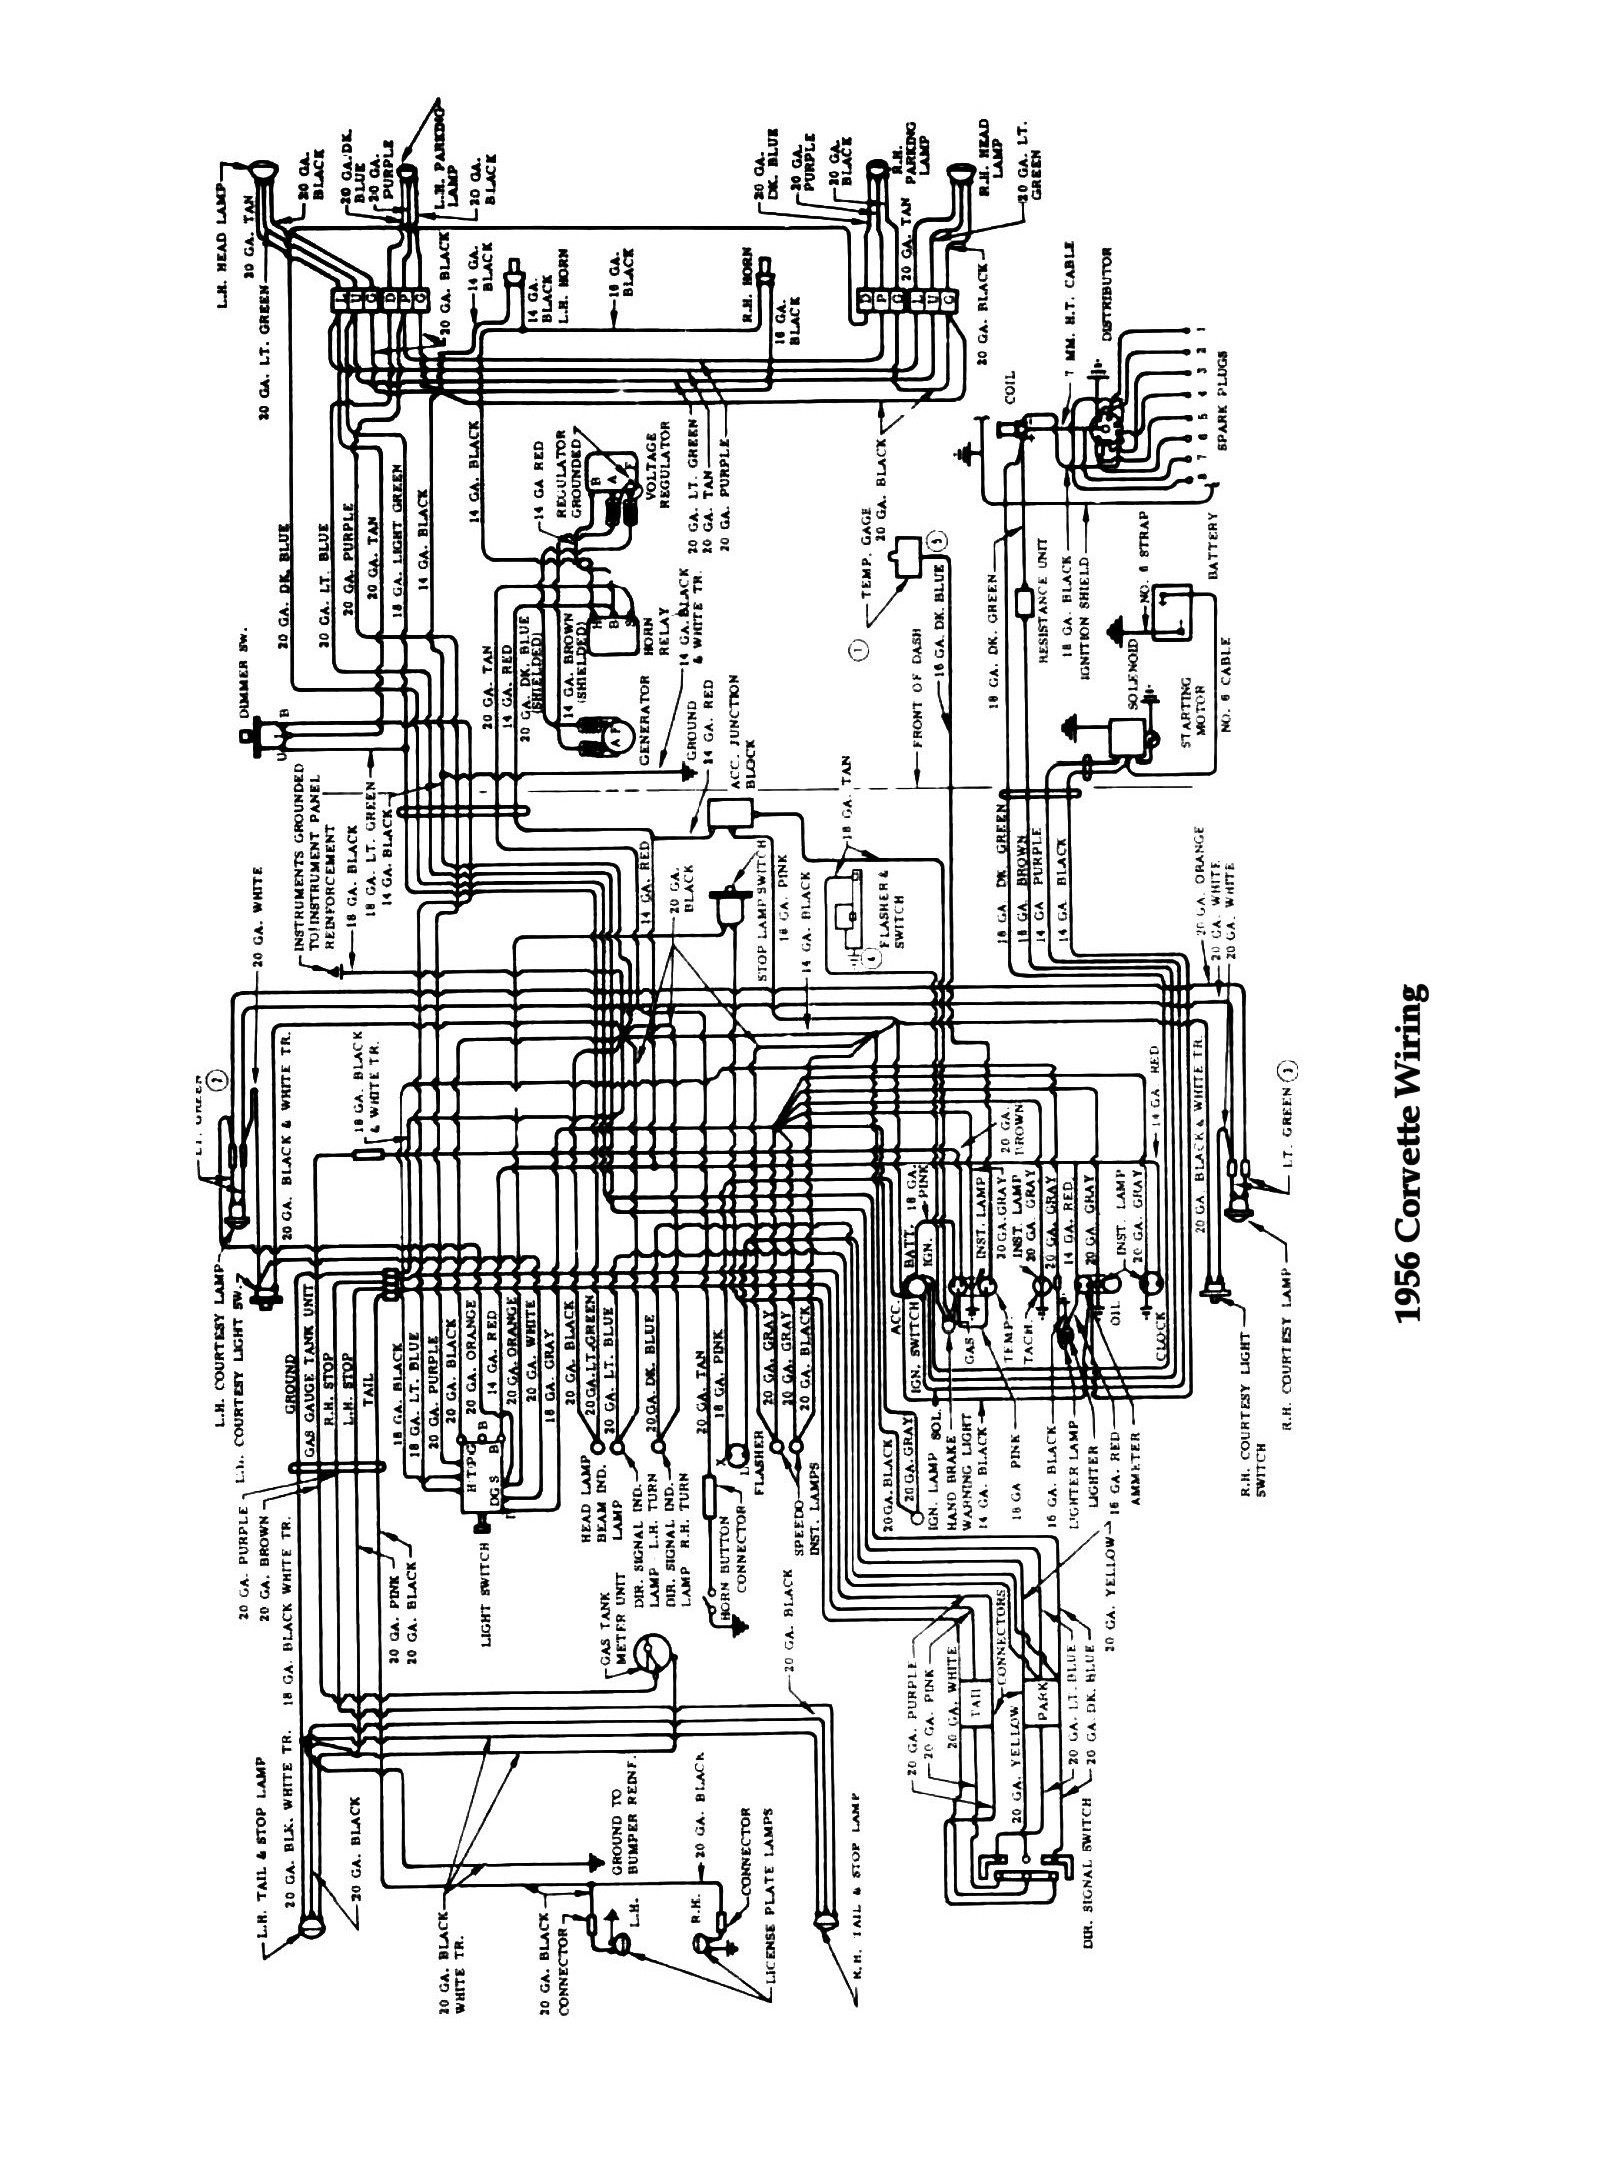 56 Pontiac Wiring Diagram Circuit Diagram Symbols \u2022 1999 Pontiac Grand  Prix Wiring Diagram 2000 Pontiac Bonneville Wiring Diagram